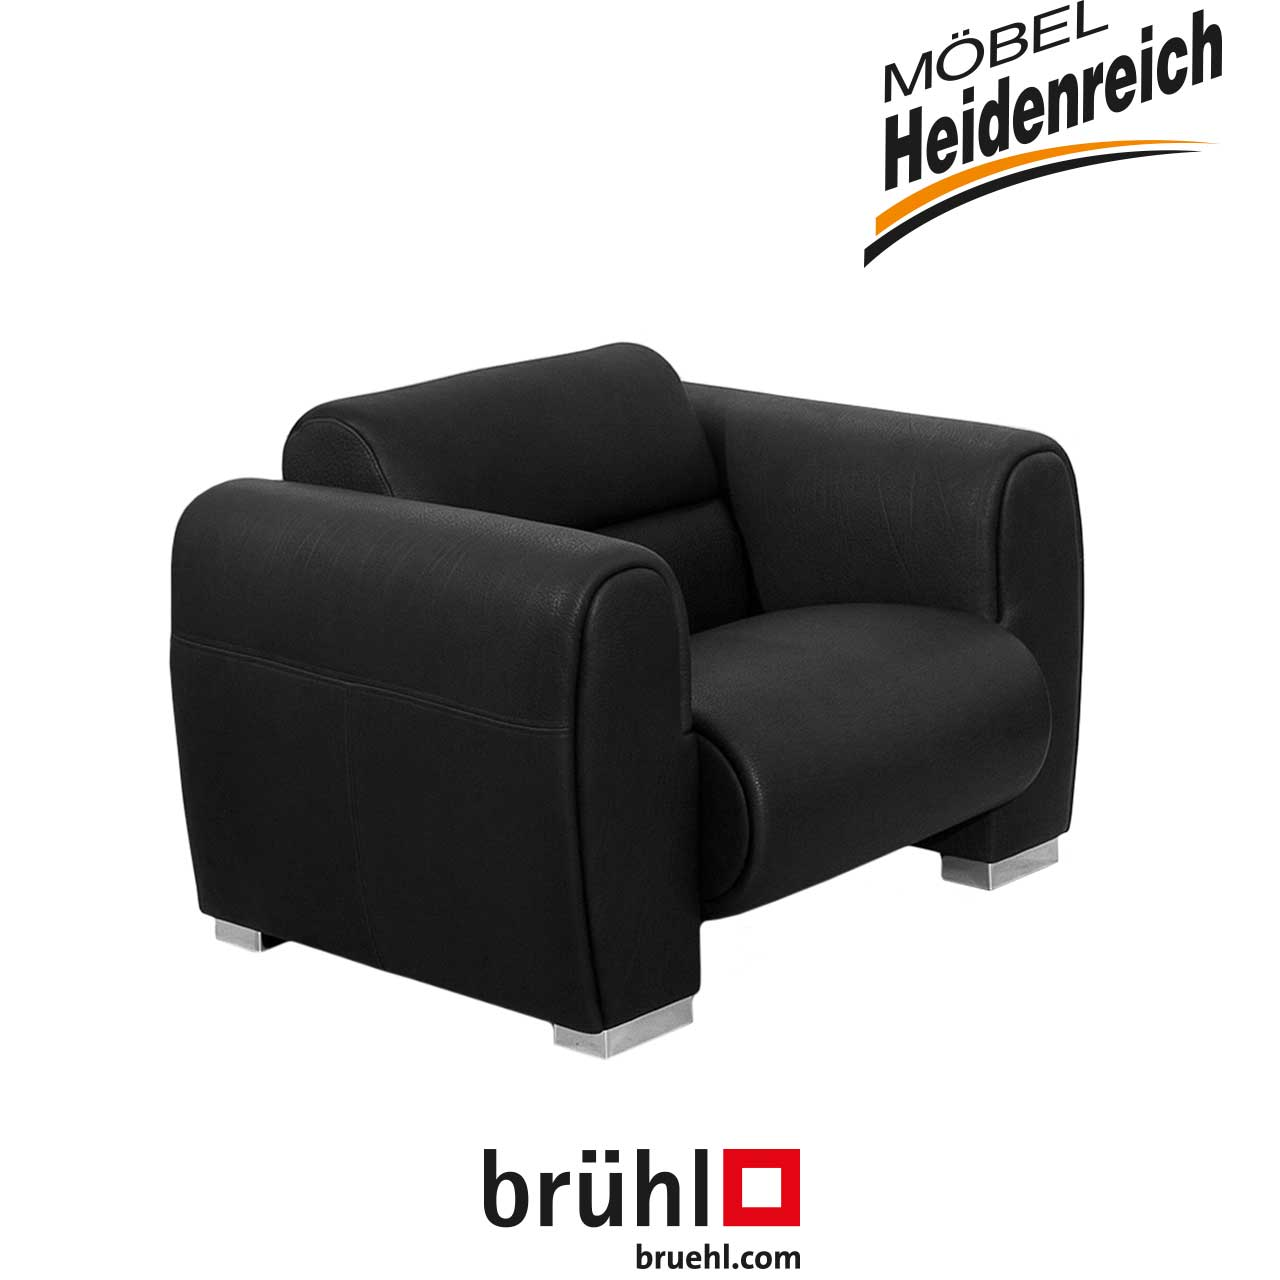 br hl sessel sumo m bel heidenreich. Black Bedroom Furniture Sets. Home Design Ideas